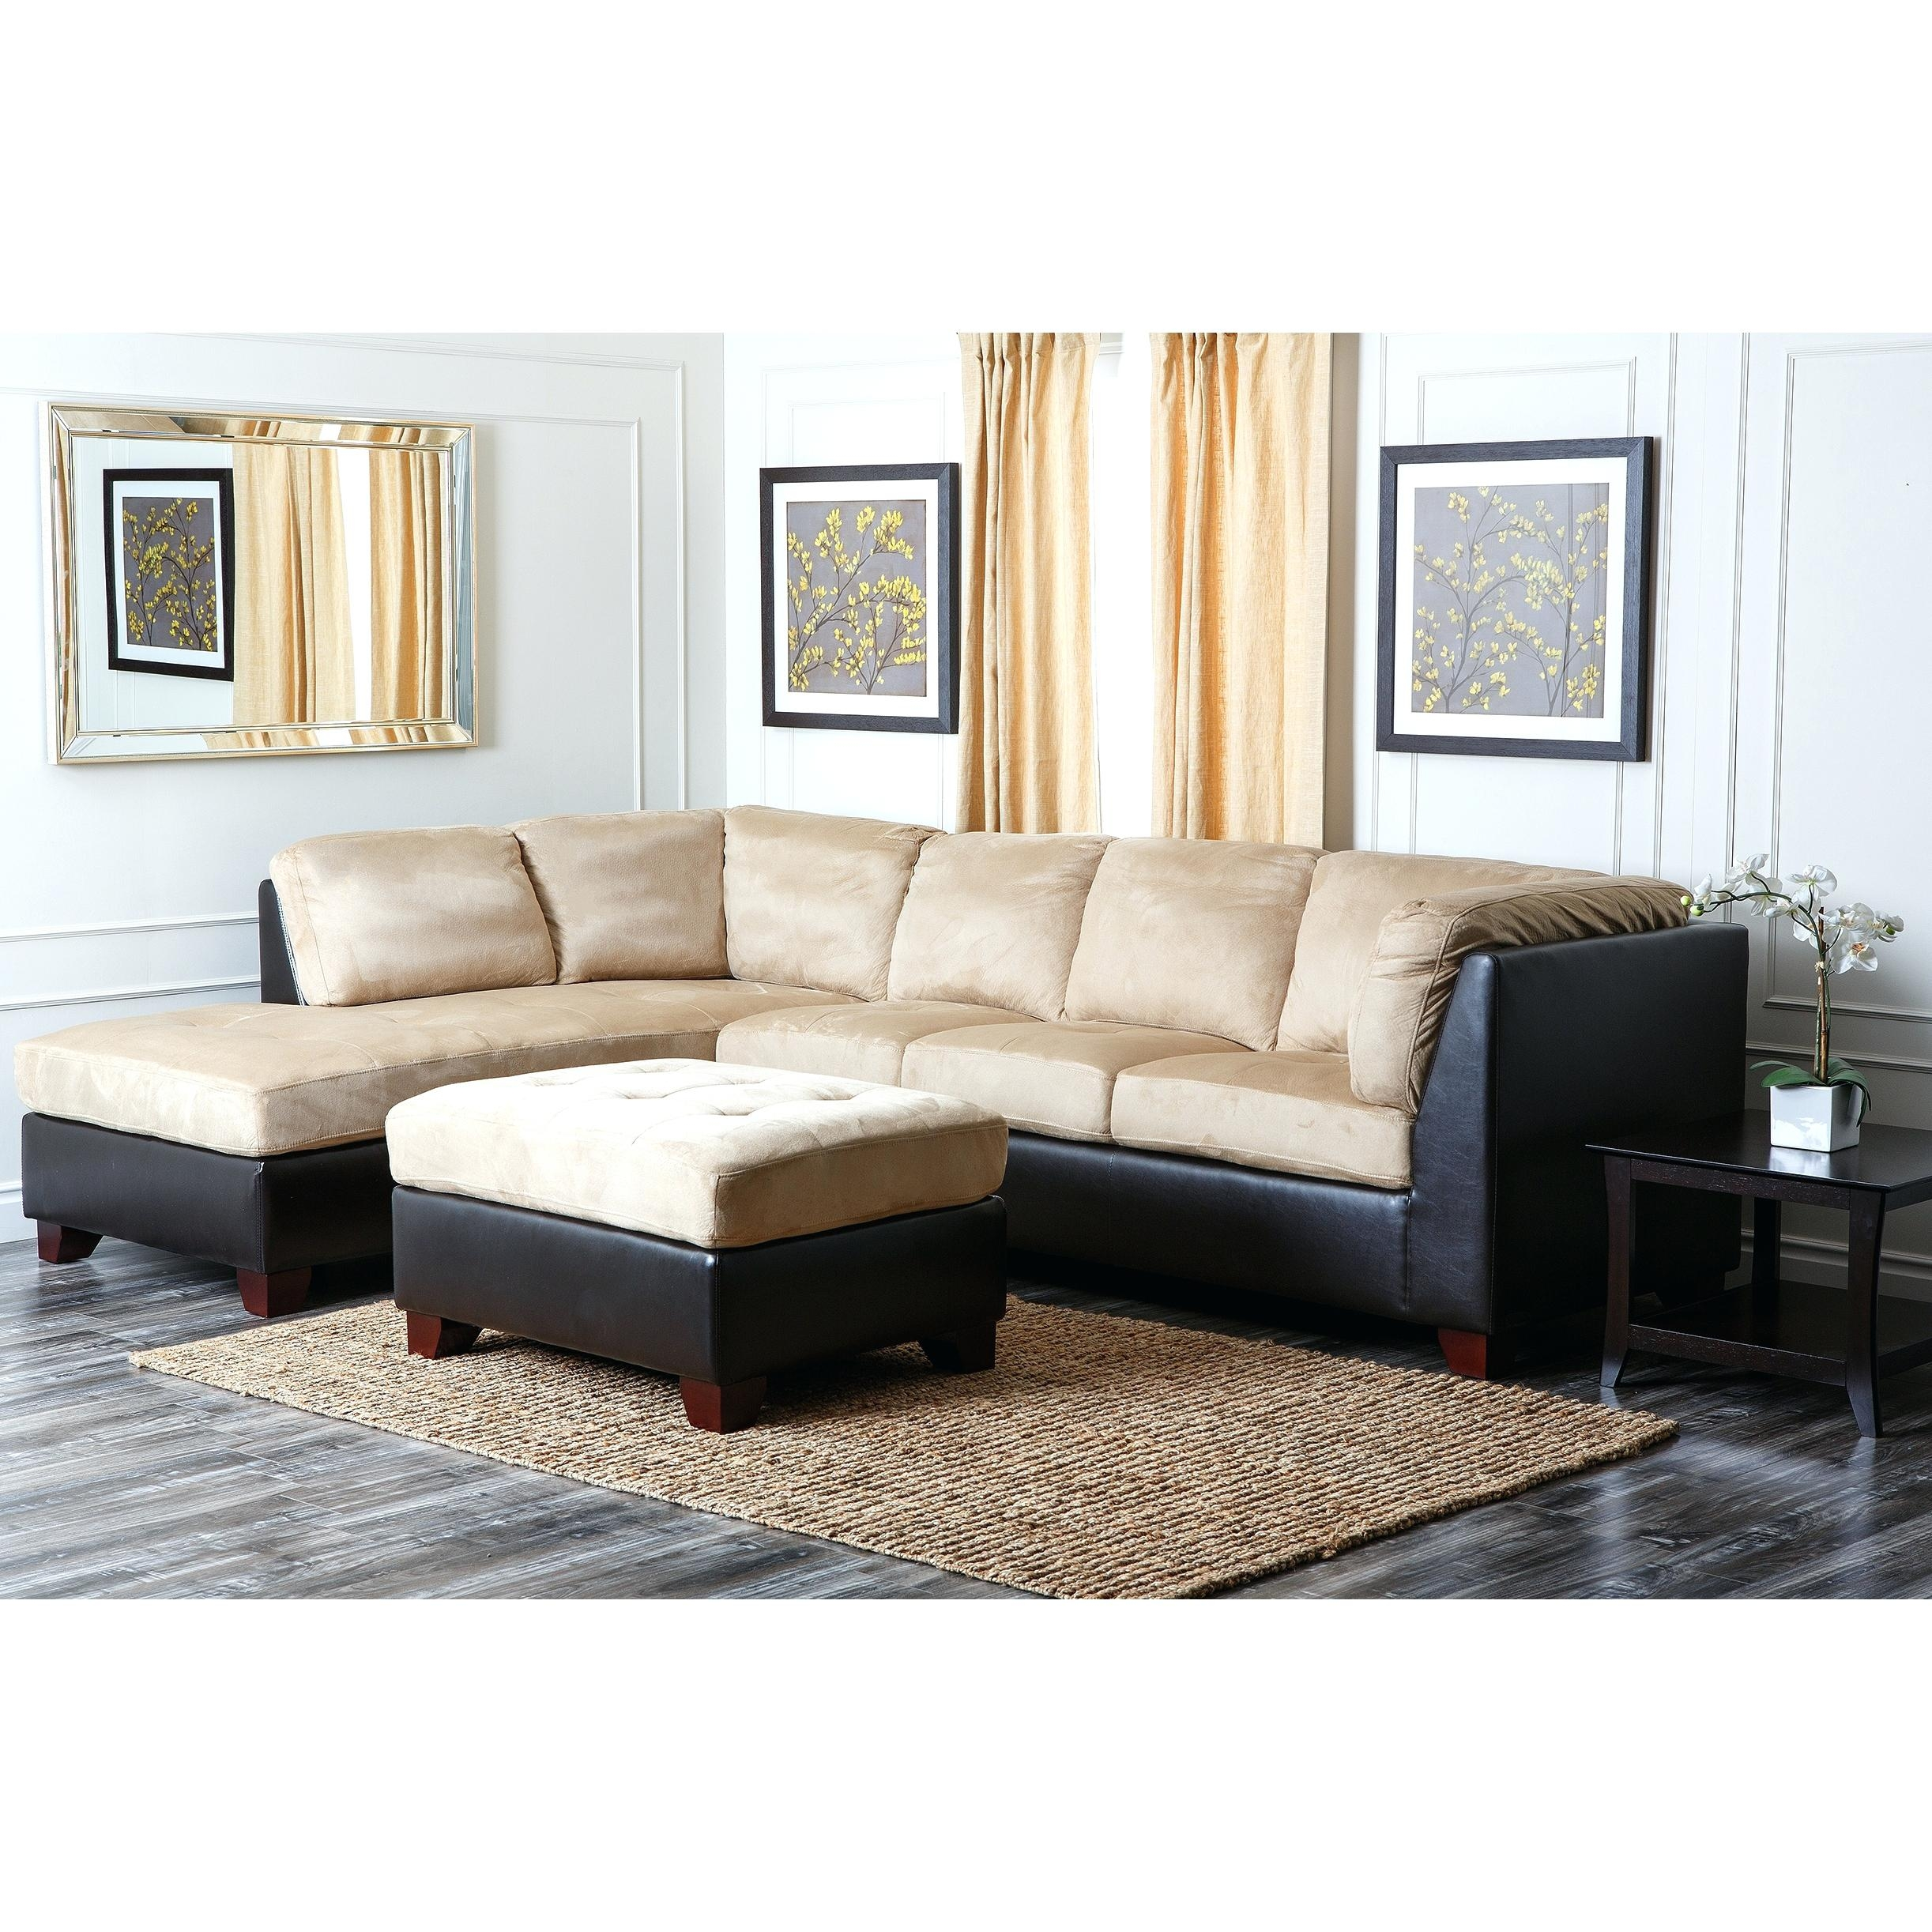 Dark Gray Ottoman Abson Living Ci D107 Crm Bailey Sectional Sofa Throughout Abbyson Living Charlotte Dark Brown Sectional Sofa And Ottoman (Image 10 of 15)